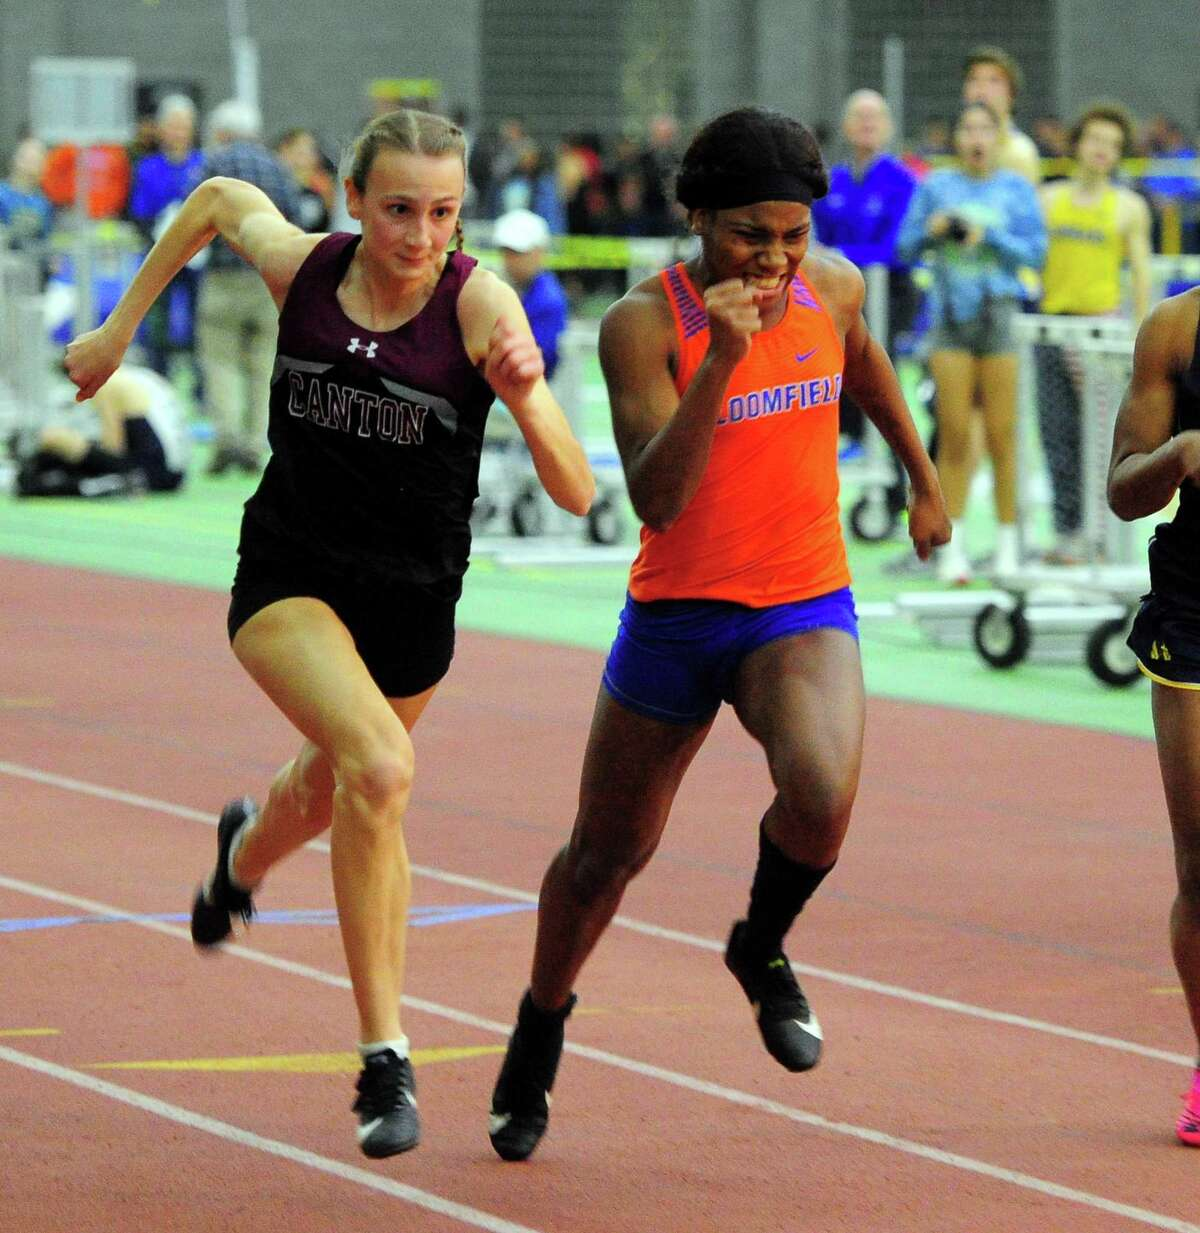 Canton's Chelsea Mitchell, and Bloomfield's Terry Miller compete in the 55 meter dash final during CIAC Class S Track & Field Championship action in New Haven, Conn., on Friday Feb. 14, 2020.